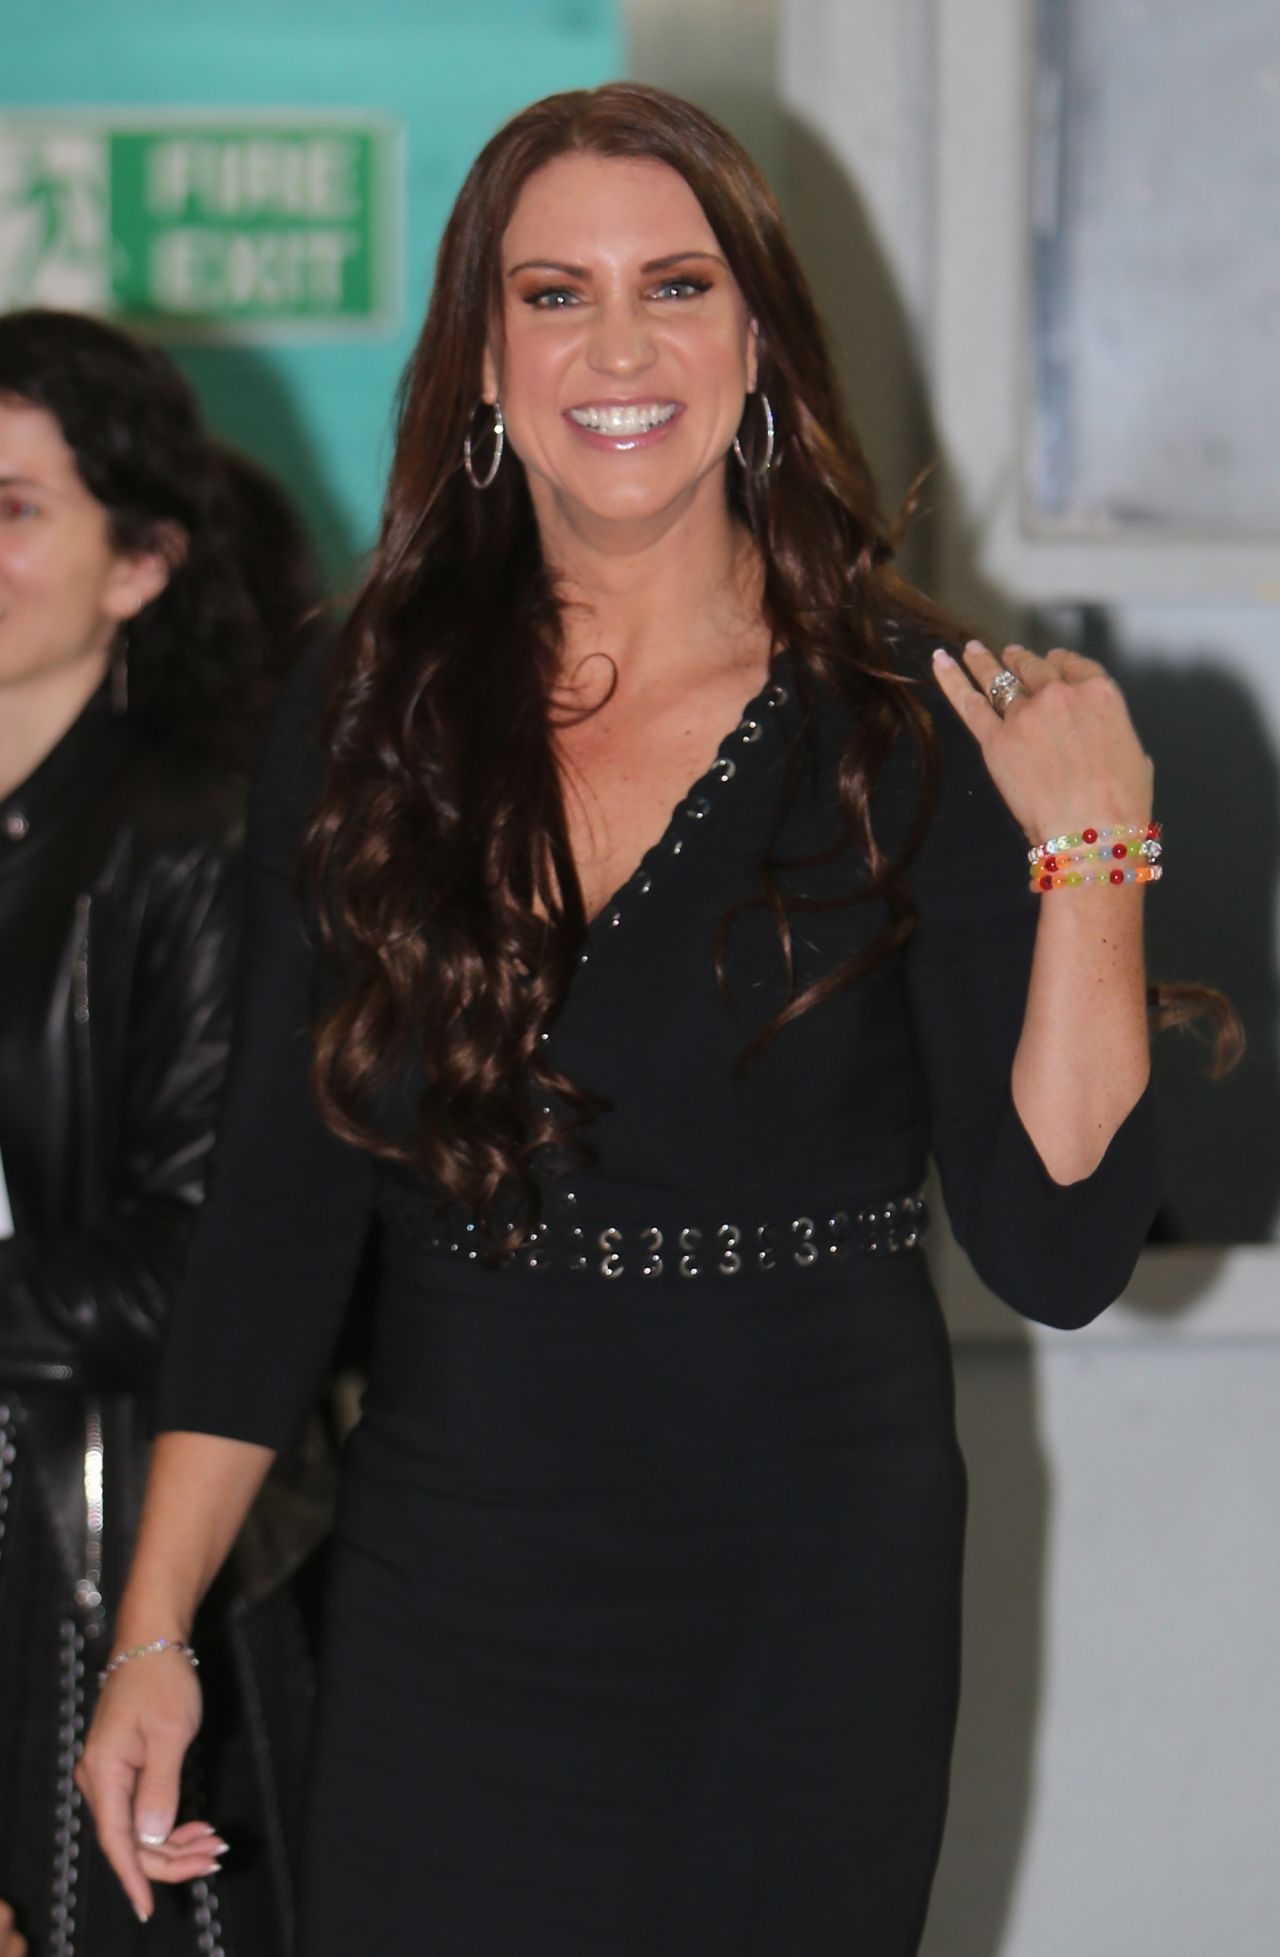 Stephanie Mcmahon Itv Studios In London 05 08 2017